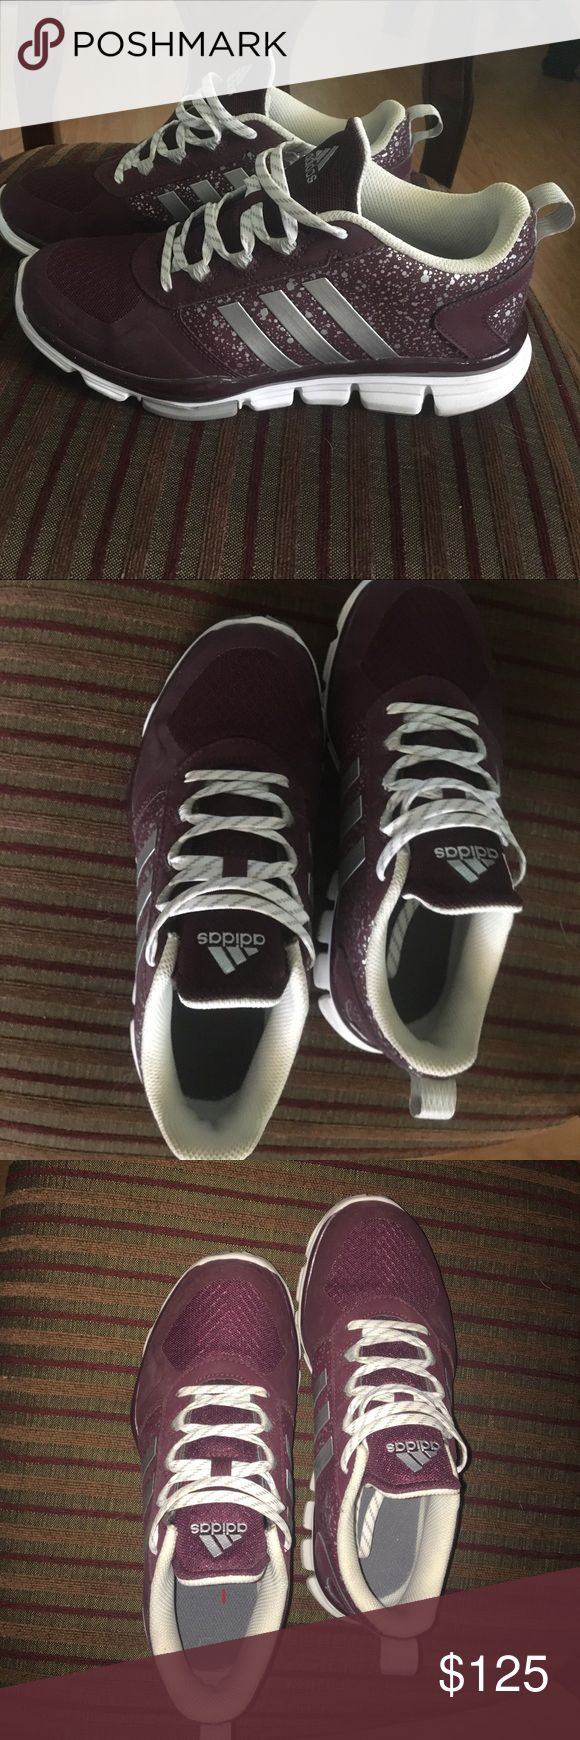 Adidas running shoes! Unique custom made Custom made adidas running shoes. Only worn once and are in great shape. They're purple with silver and grey accents. Women's Size 7! I'm always accepting offers!!:) adidas Shoes Athletic Shoes